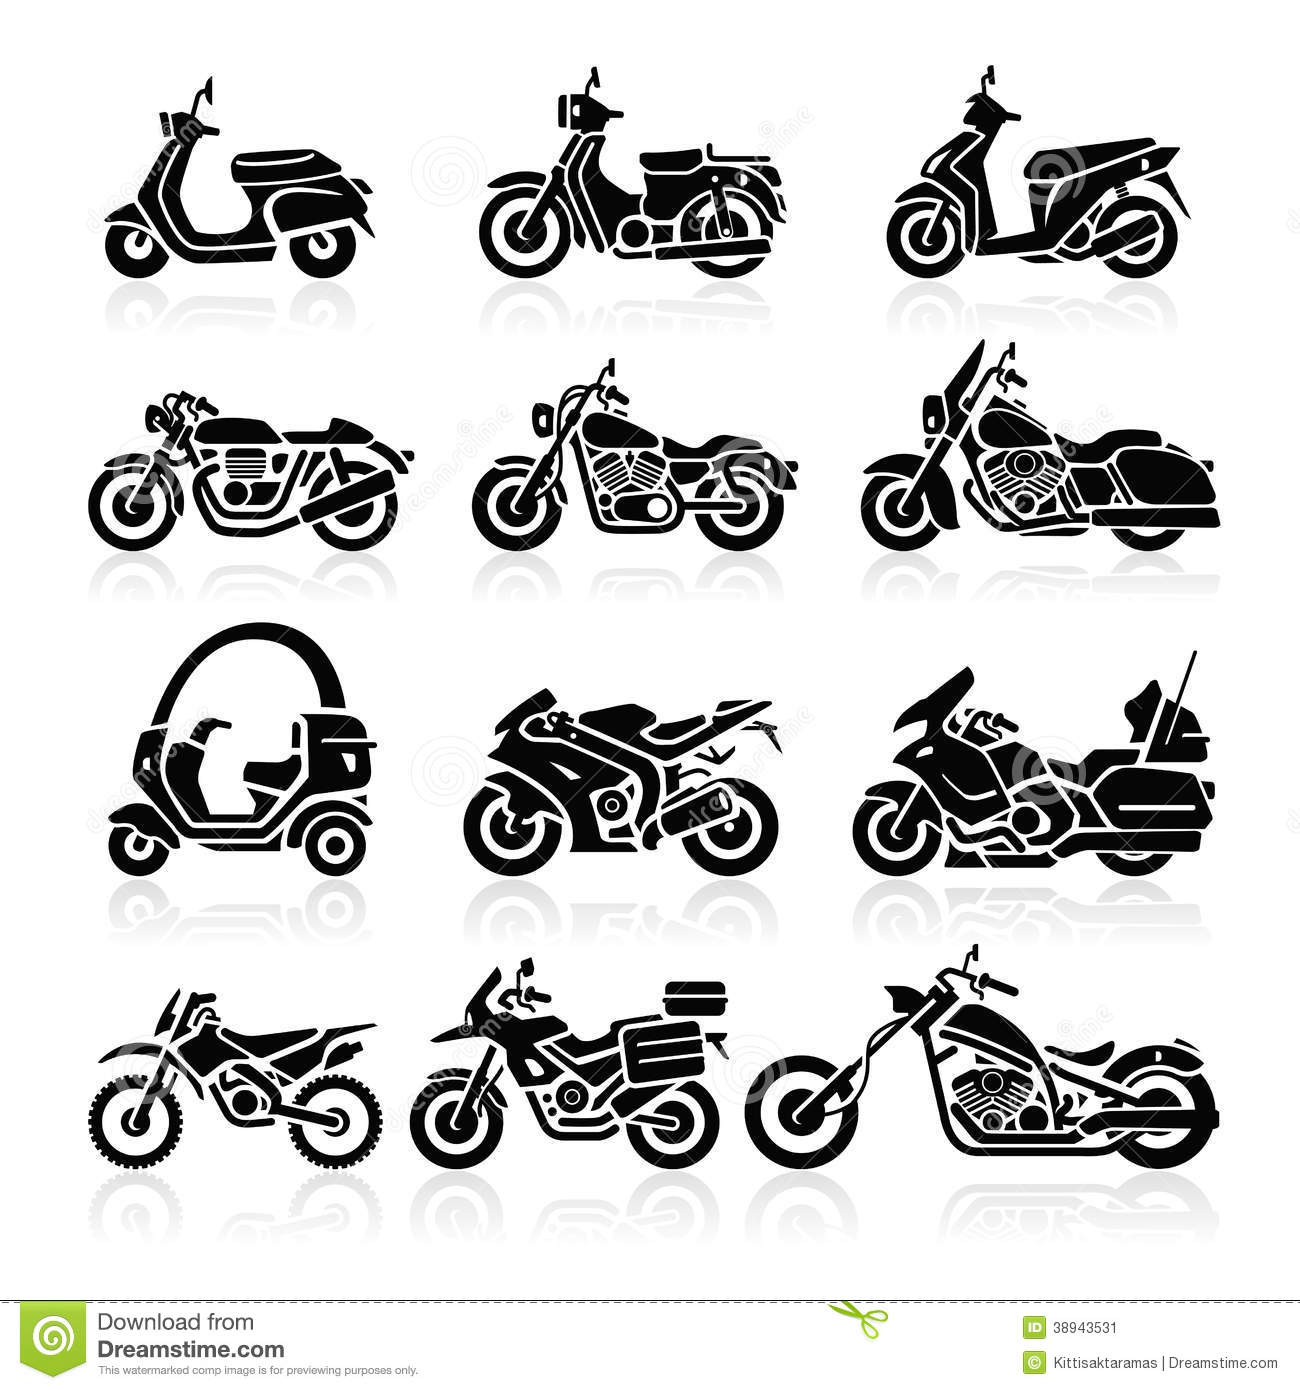 Icones De Moto Illustration De Vecteur Illustration De